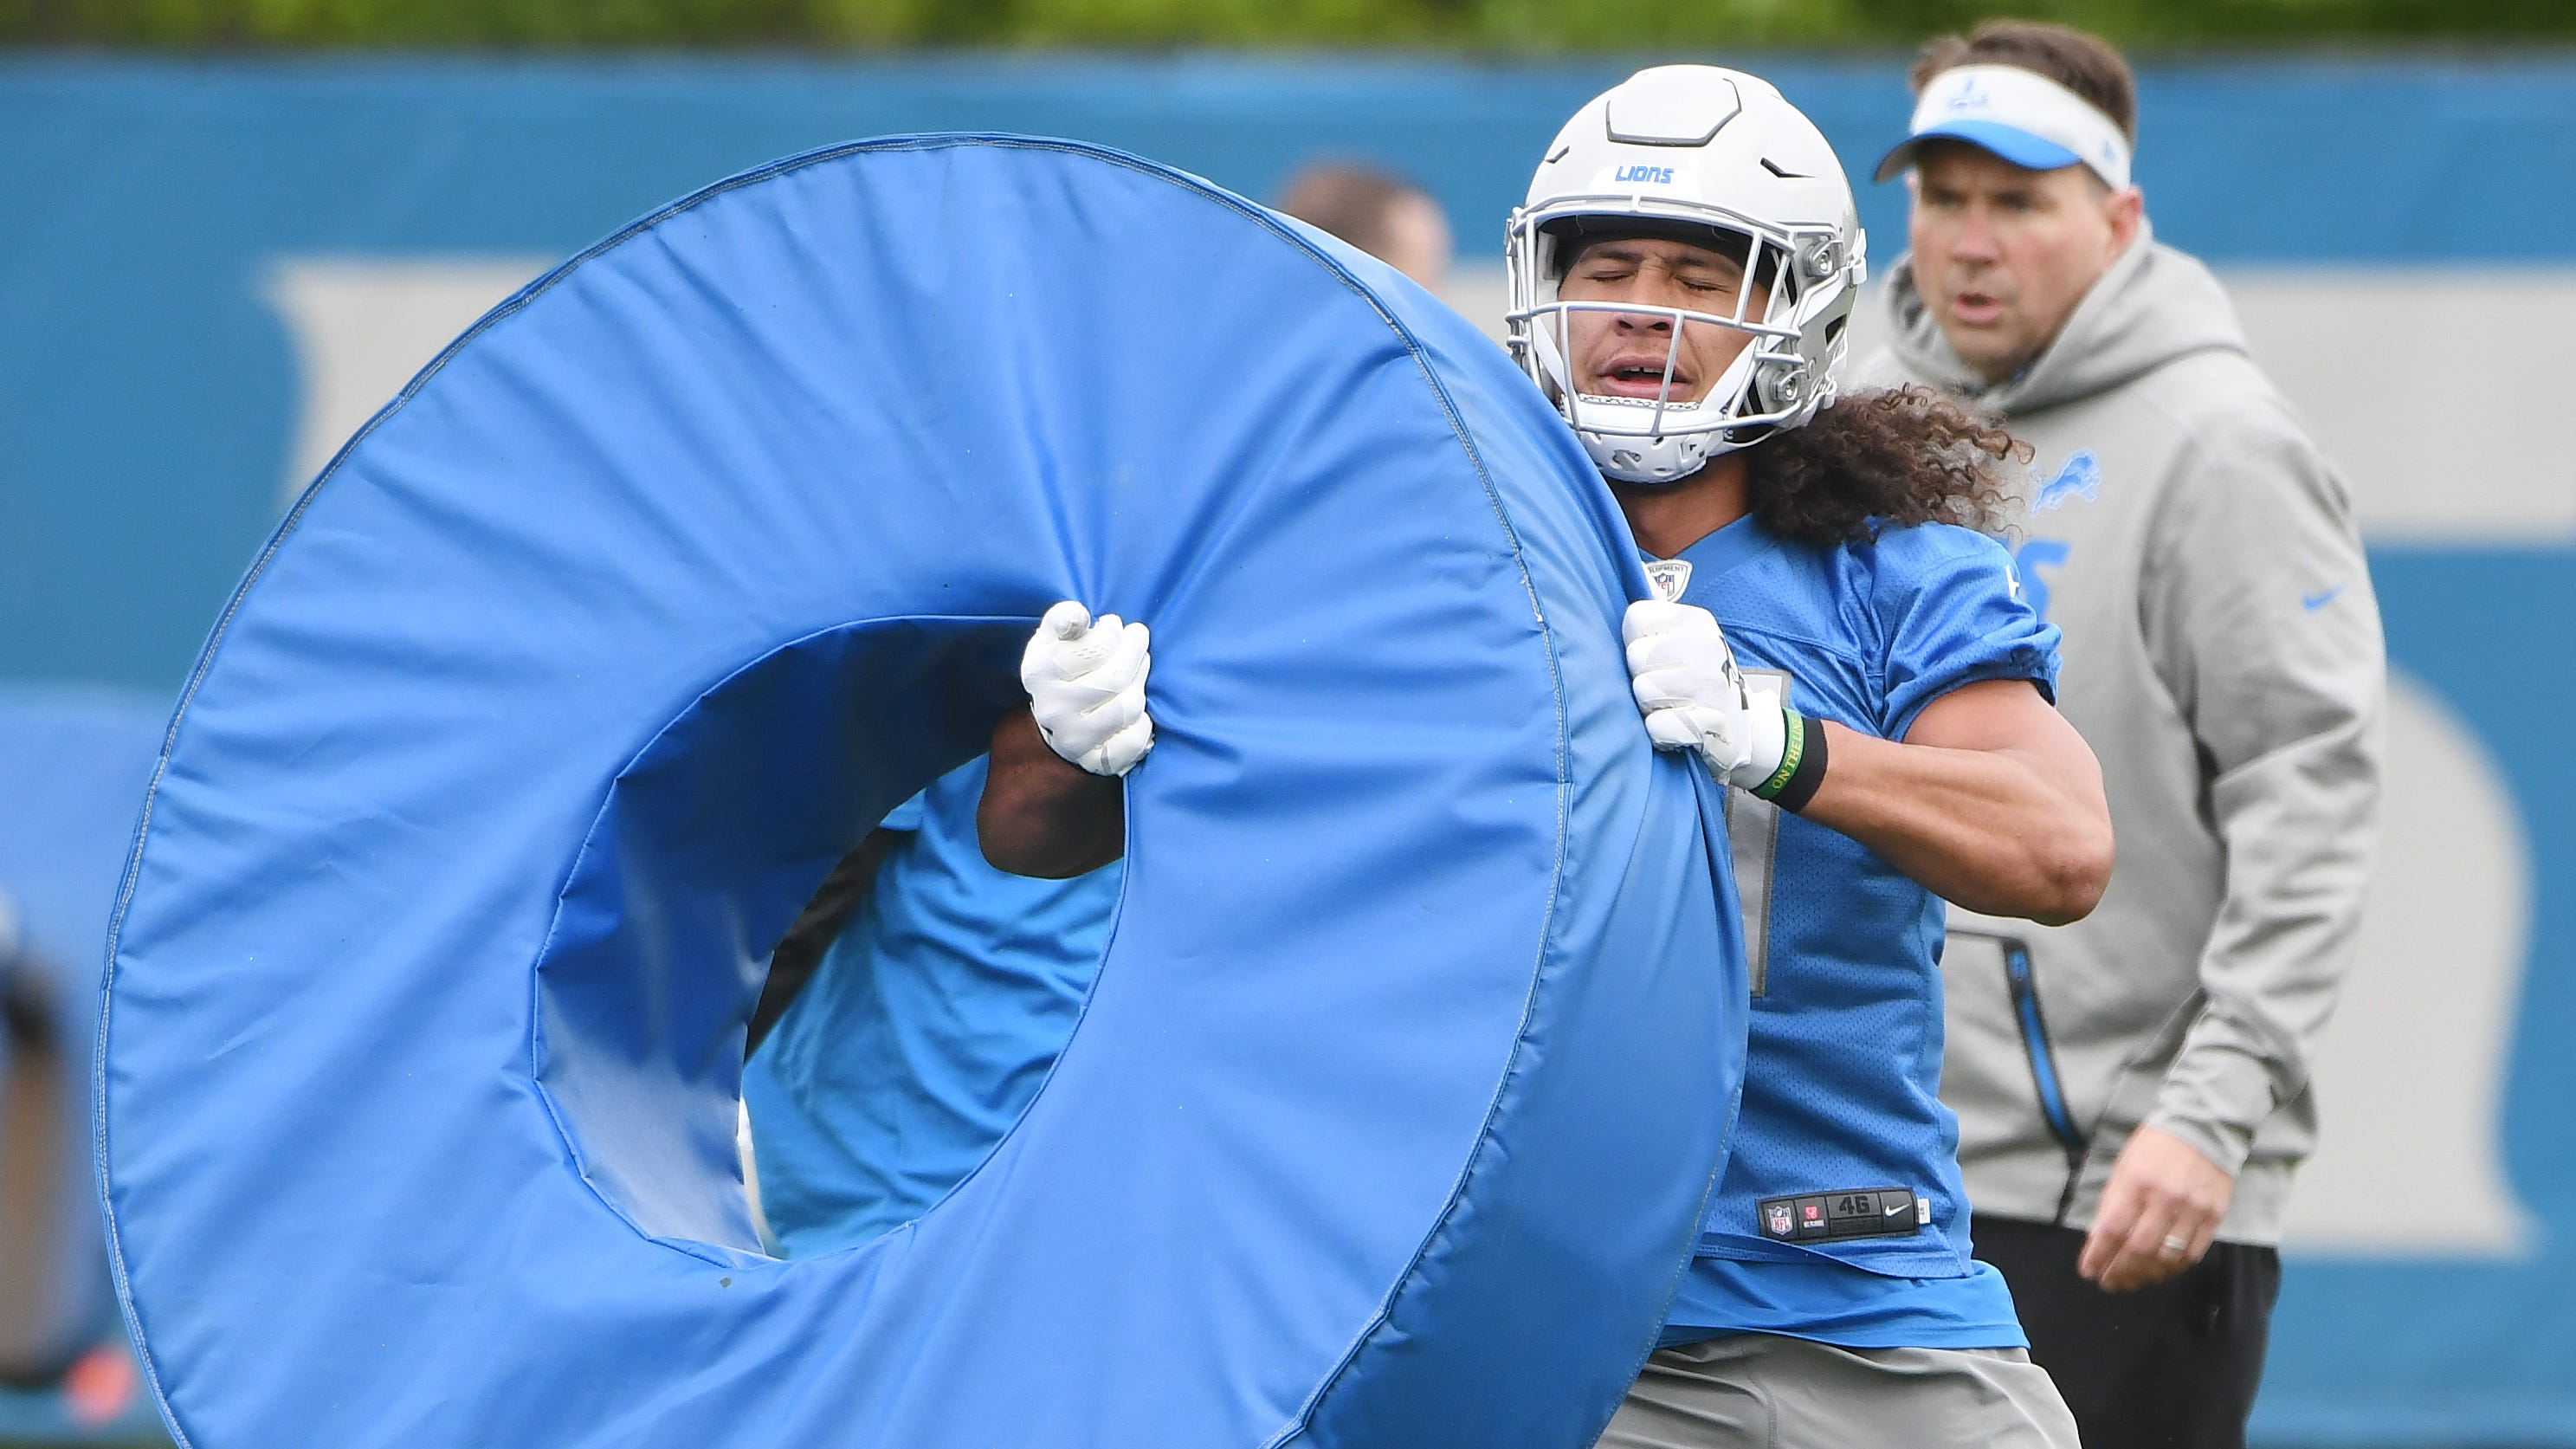 Lions rookie linebacker Jahlani Tavai ignores opinions of 'goats' over draft pick